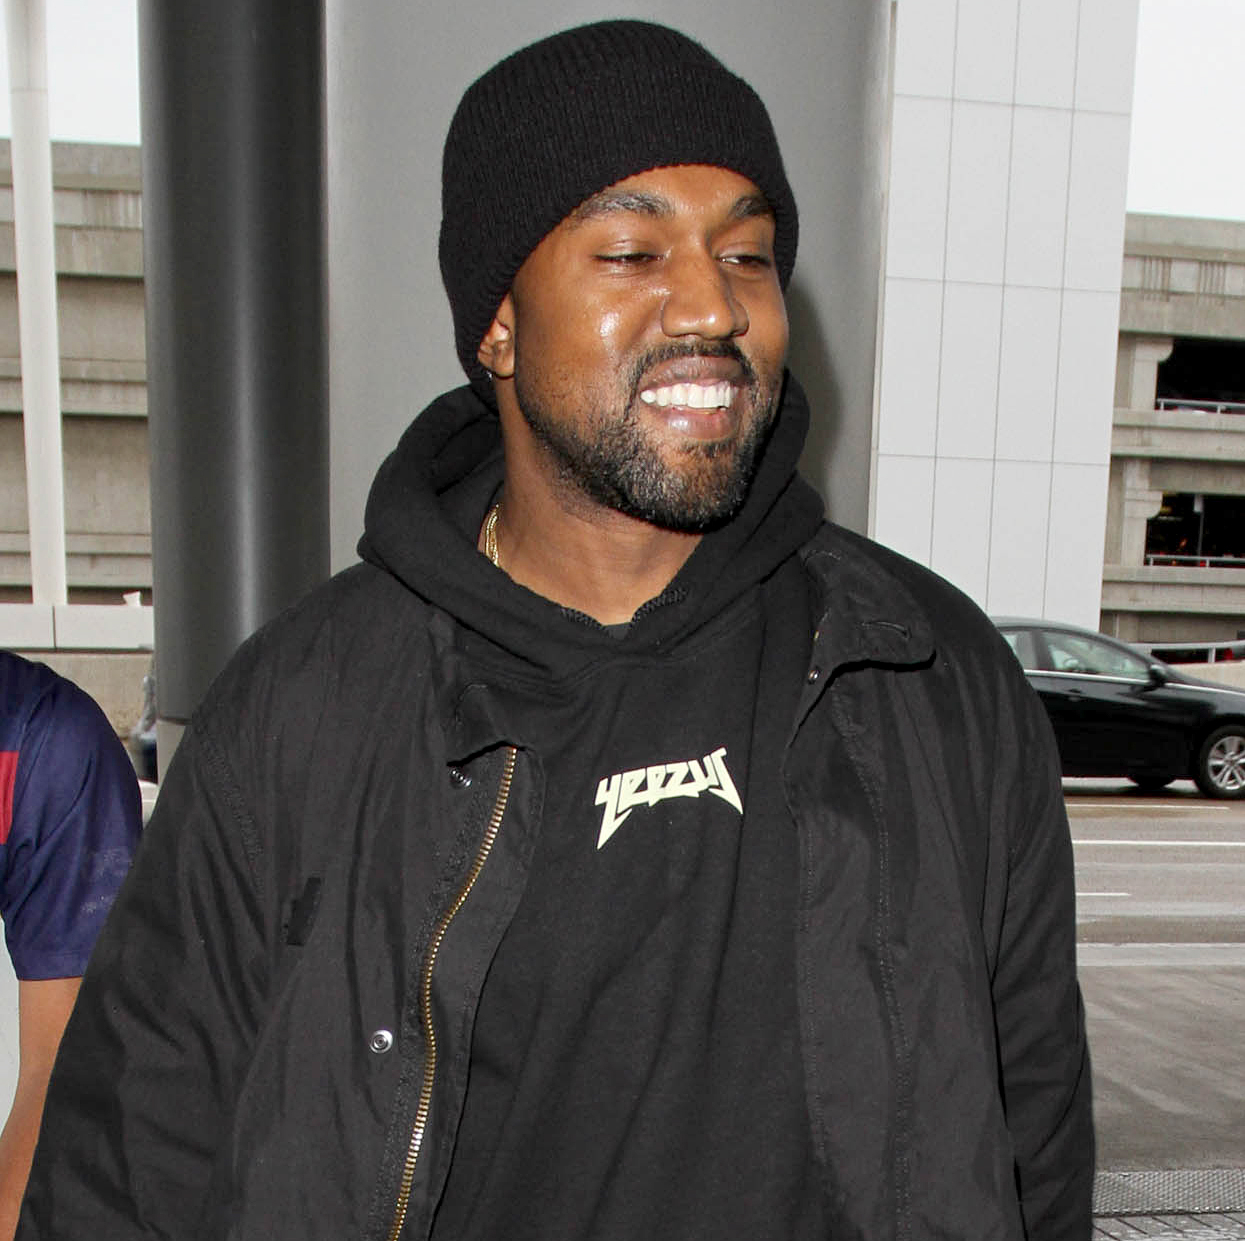 Kanye West is seen at LAX on February 17, 2016 in Los Angeles, California.